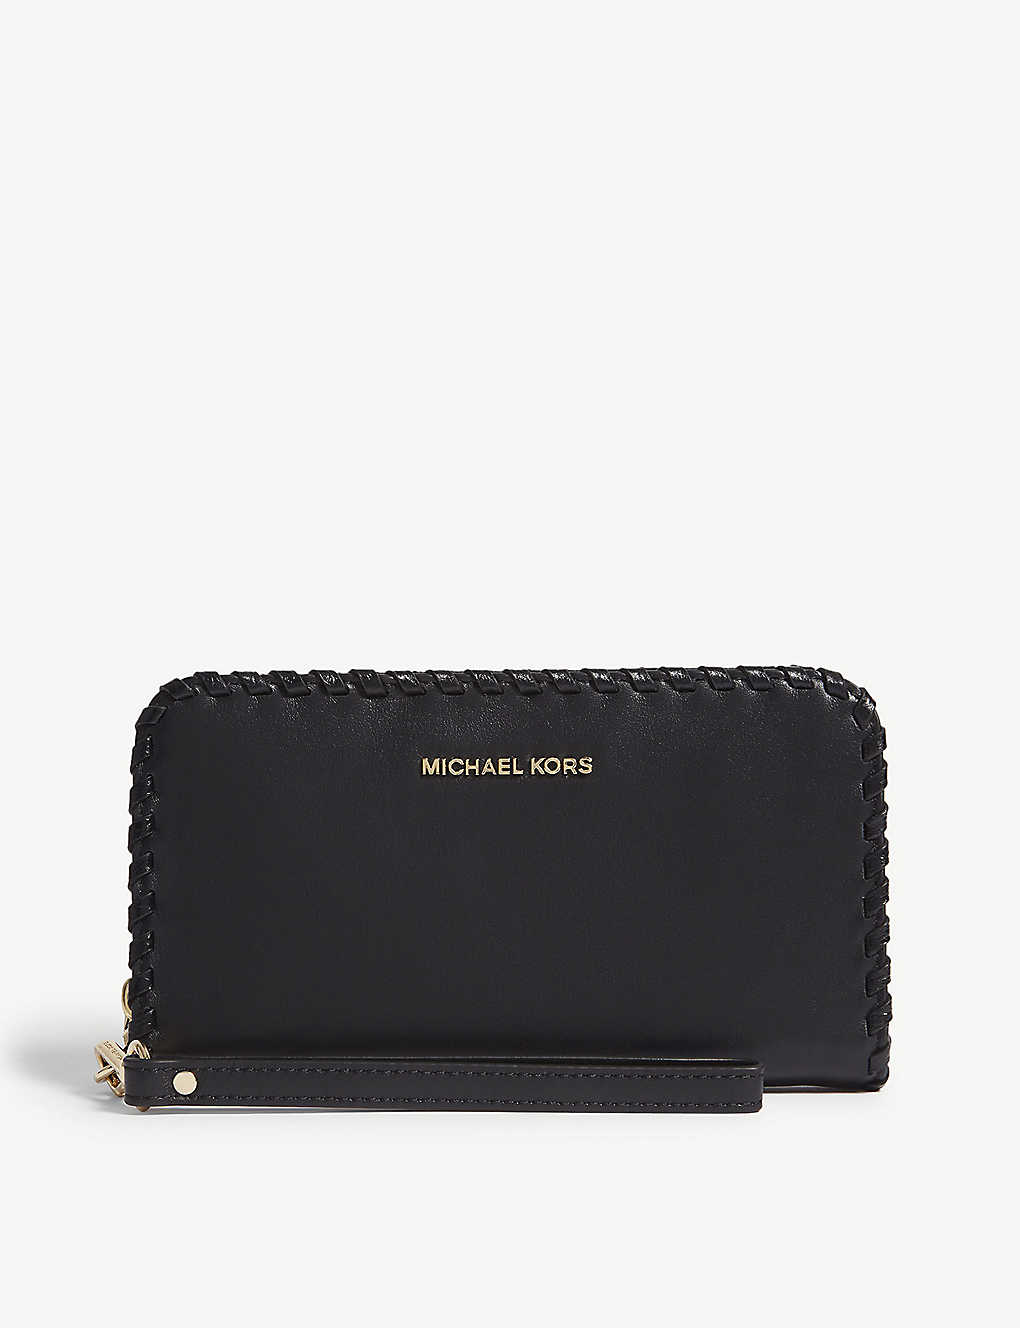 04a5f602f1e2 MICHAEL MICHAEL KORS - Whipstitch leather wristlet wallet ...